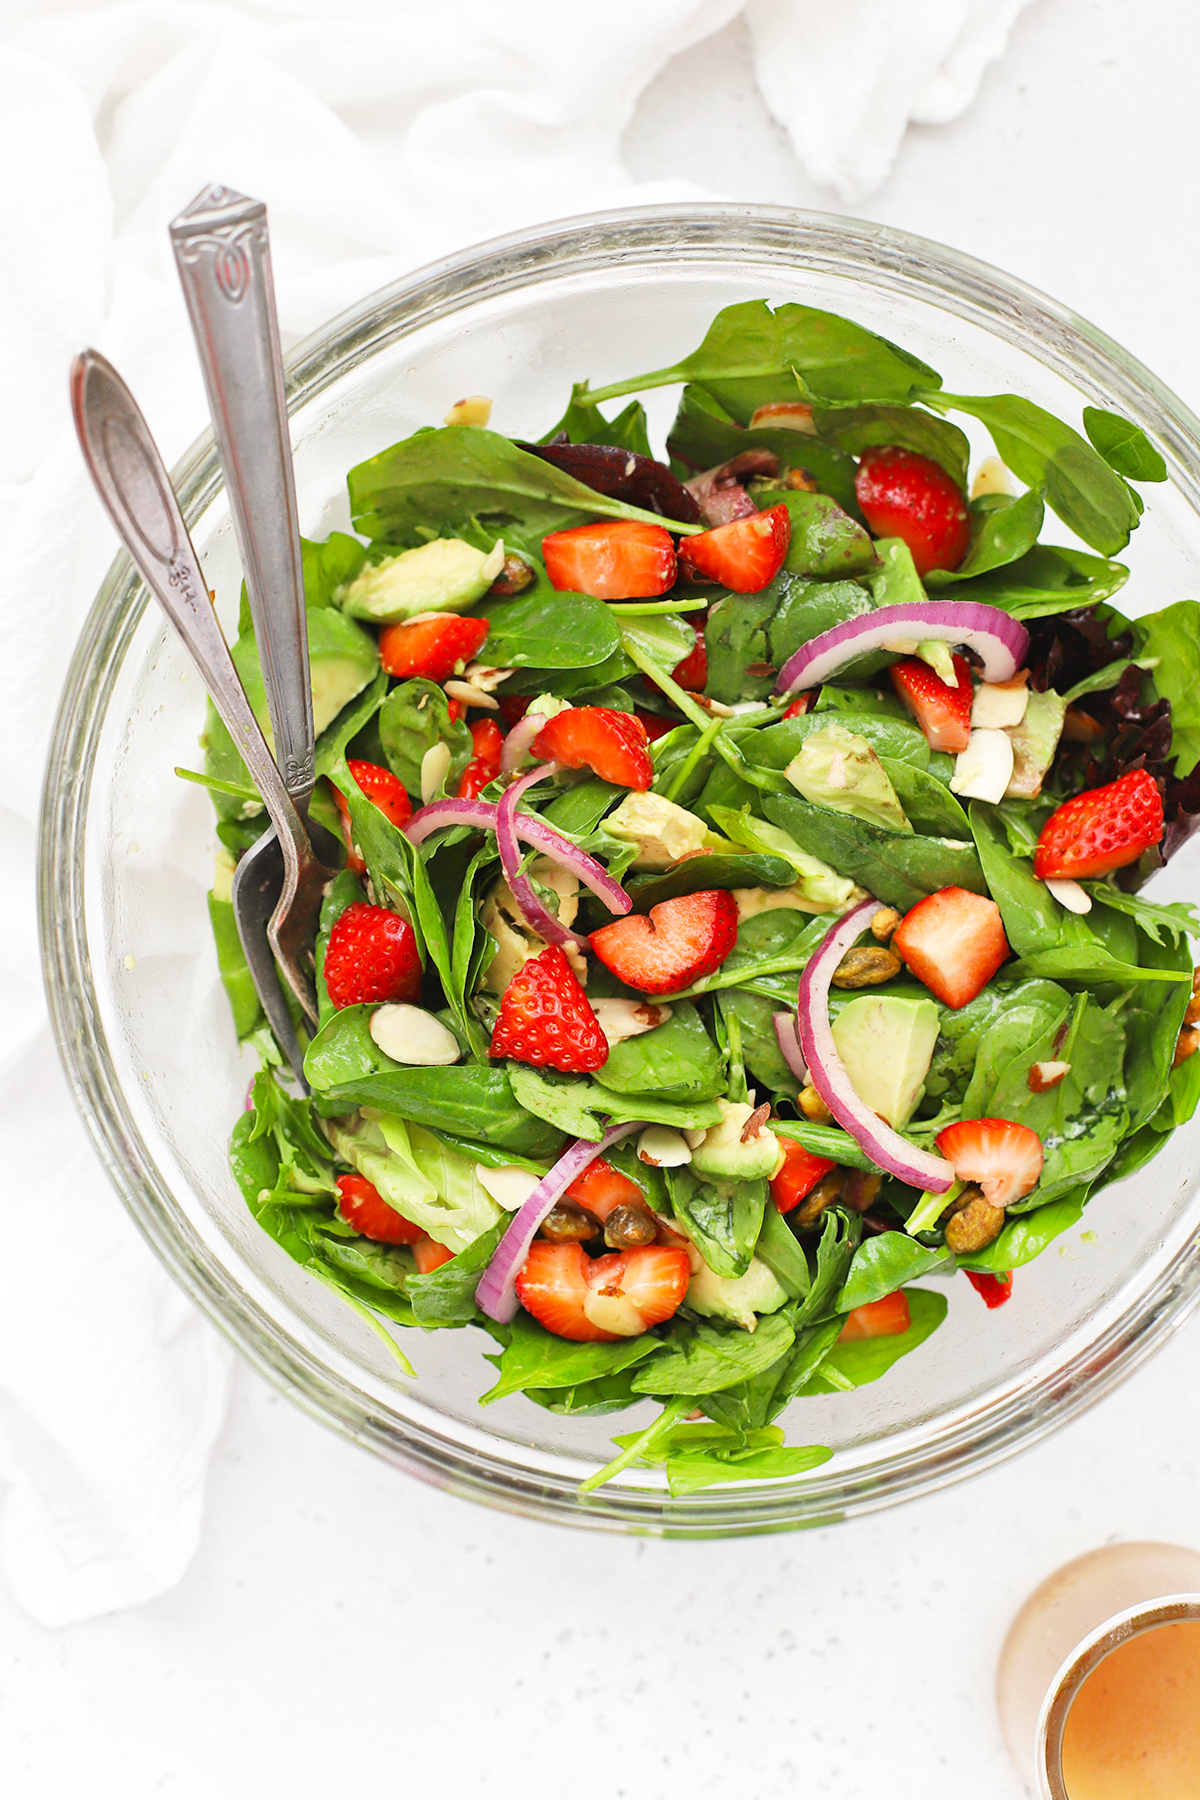 Overhead view of a mixing bowl of a tossed strawberry spinach salad